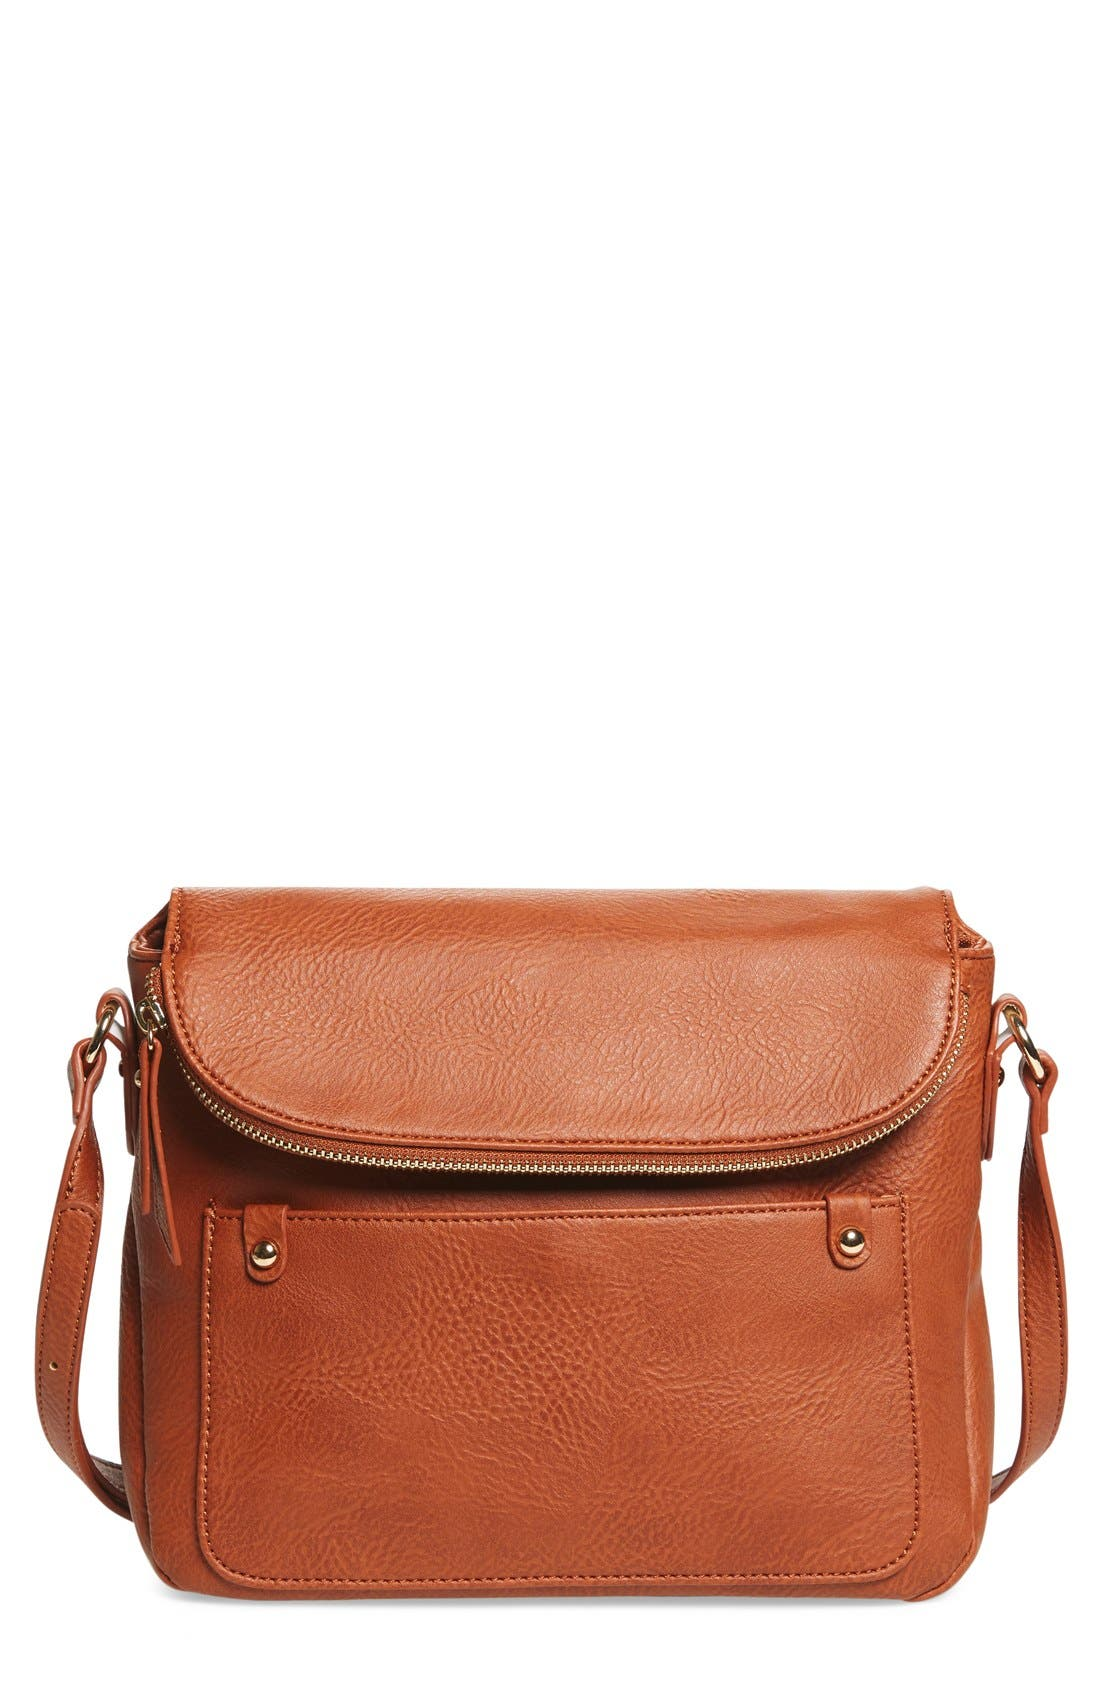 Alternate Image 1 Selected - BP. Zip Flap Faux Leather Crossbody Bag